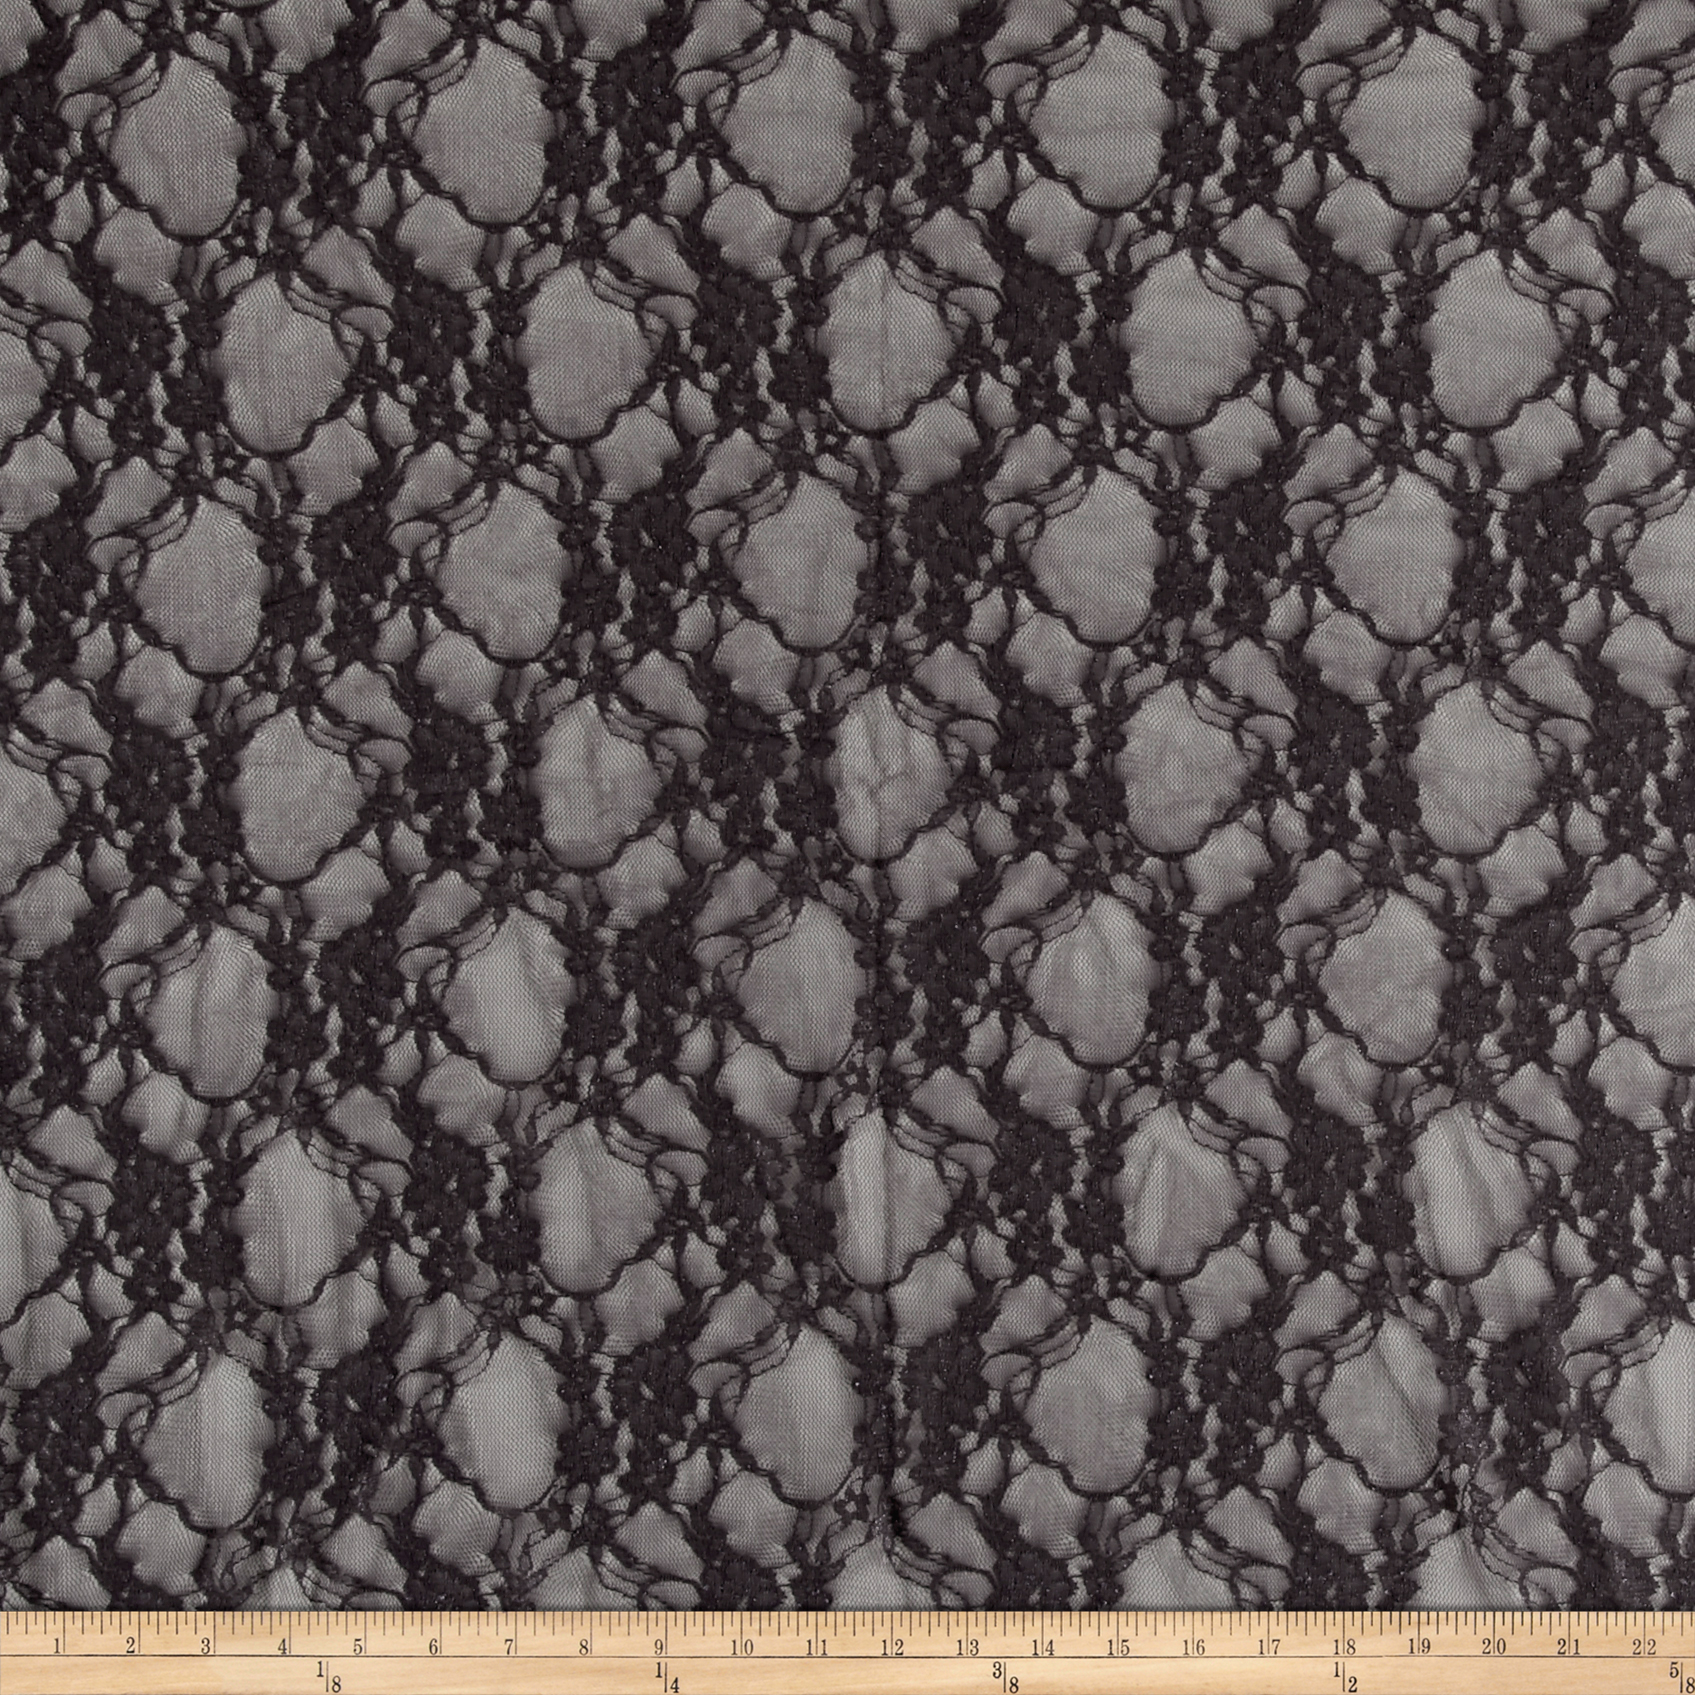 Giselle Stretch Floral Lace Gray Fabric by Ben in USA